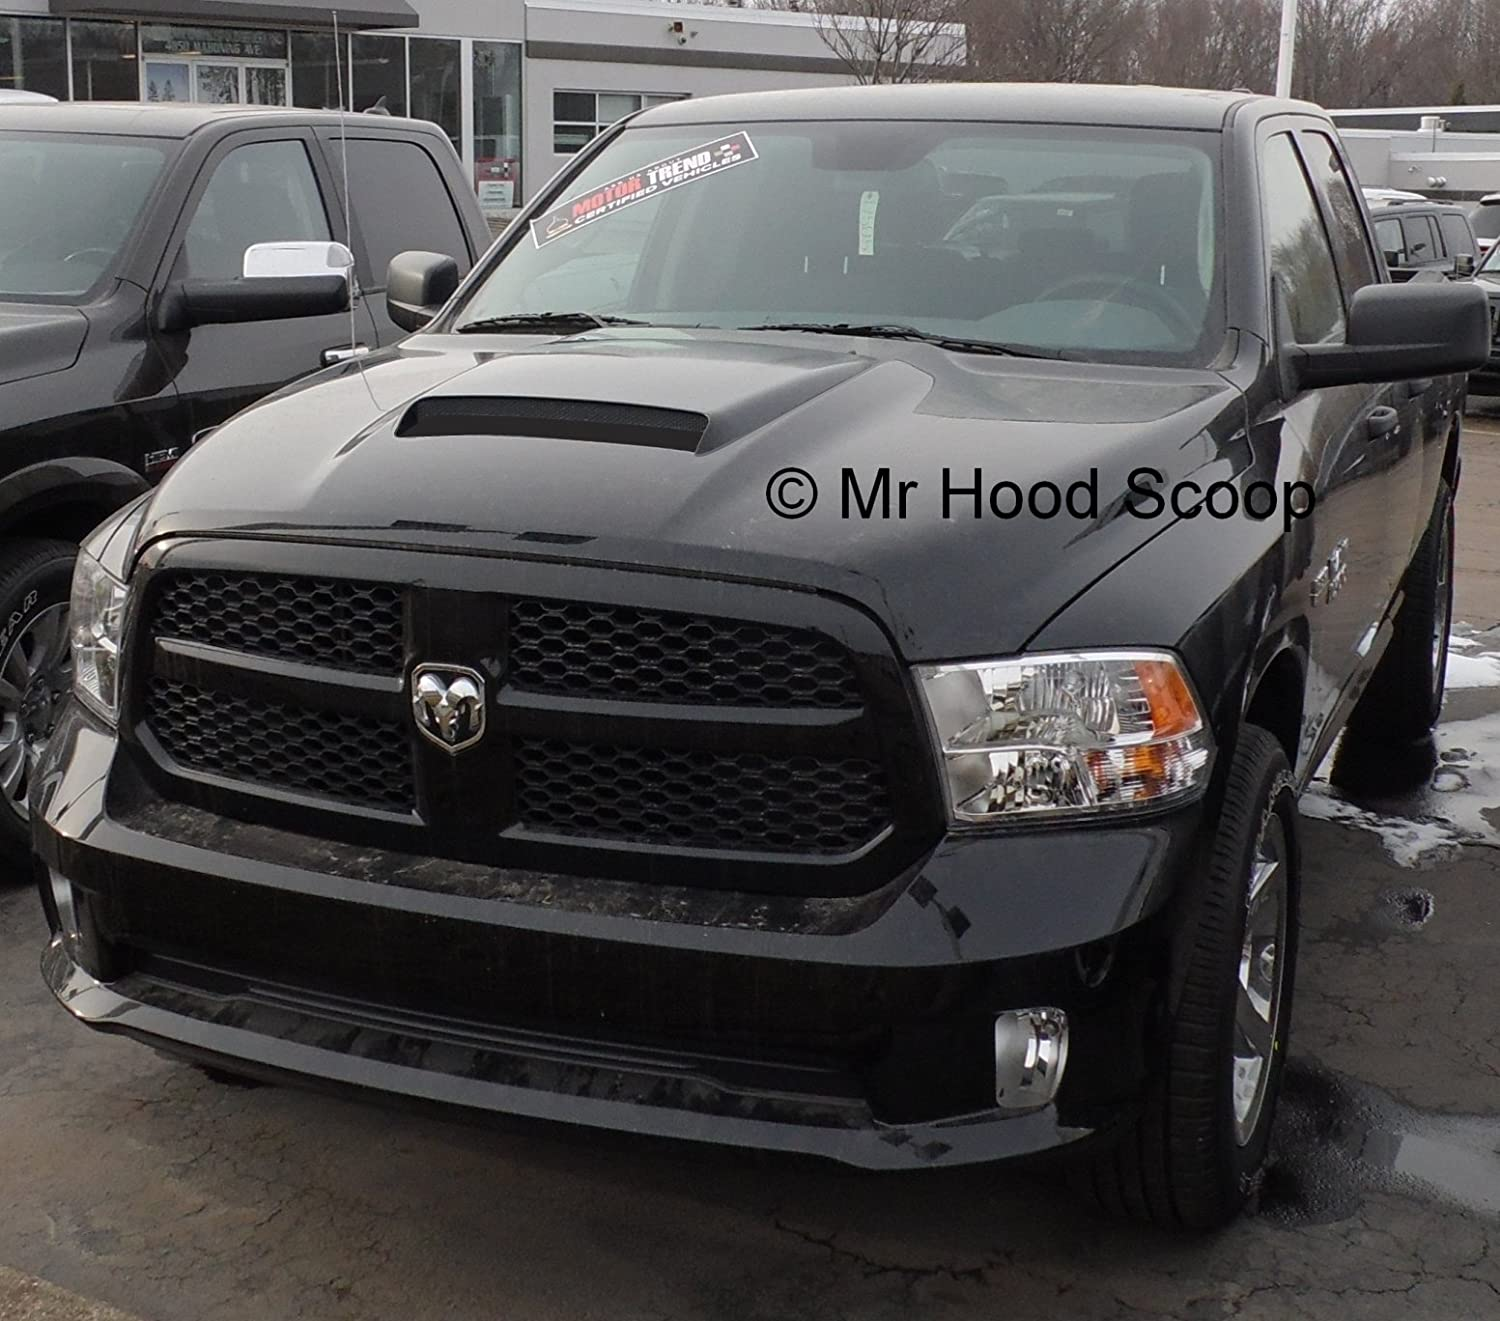 Amazon 2002 2018 Hood Scoop for Dodge Ram 1500 by MrHoodScoop